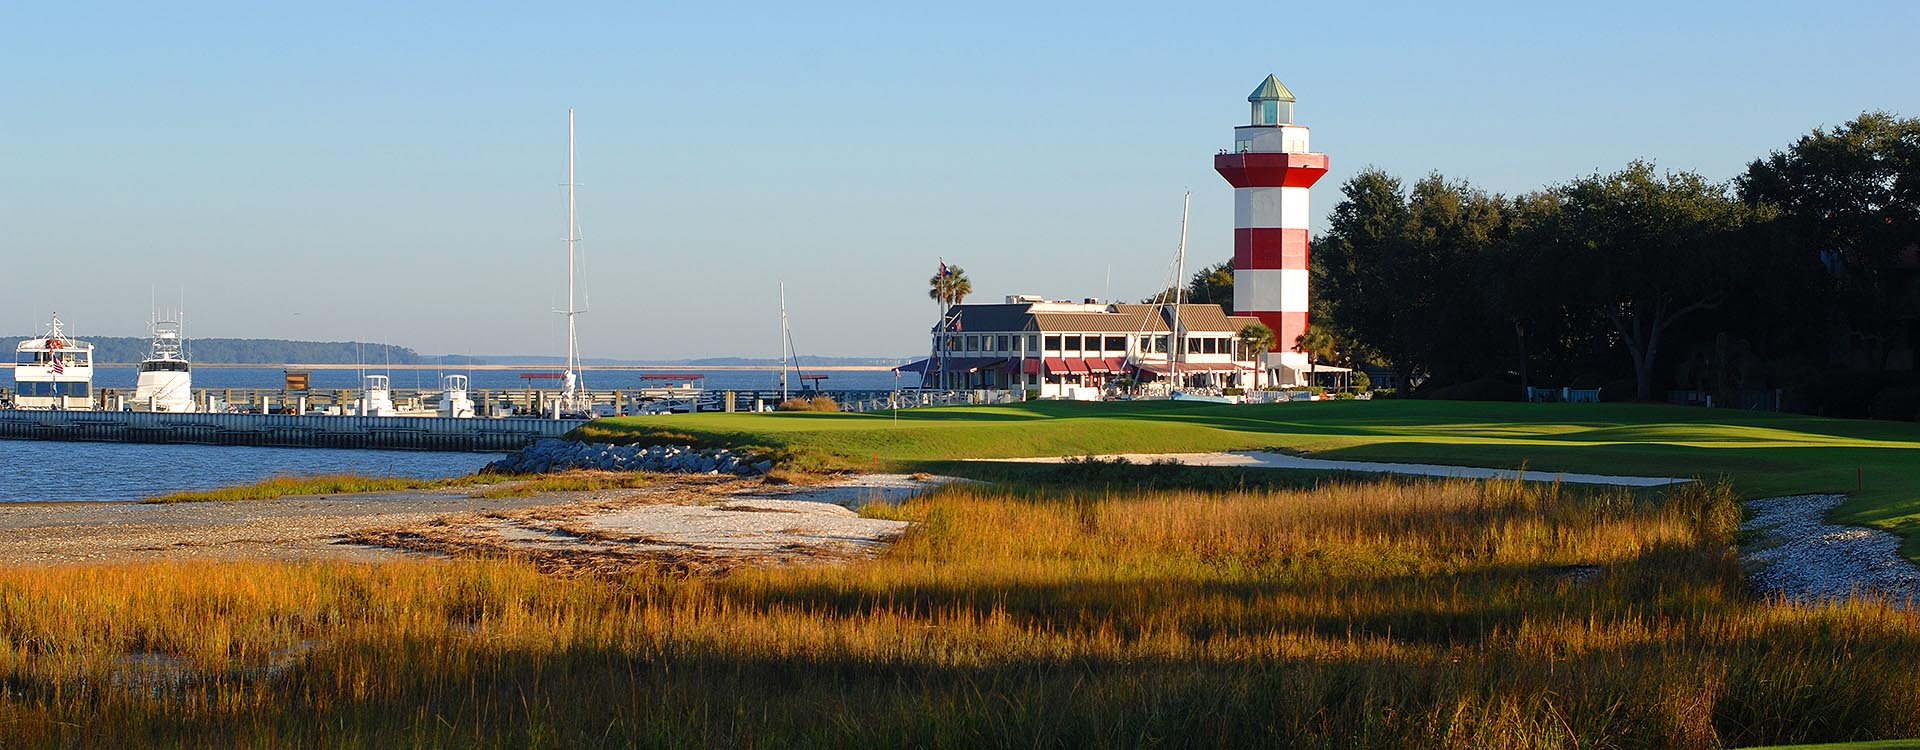 hiltonhead-lighthouse-1920x750d.jpg